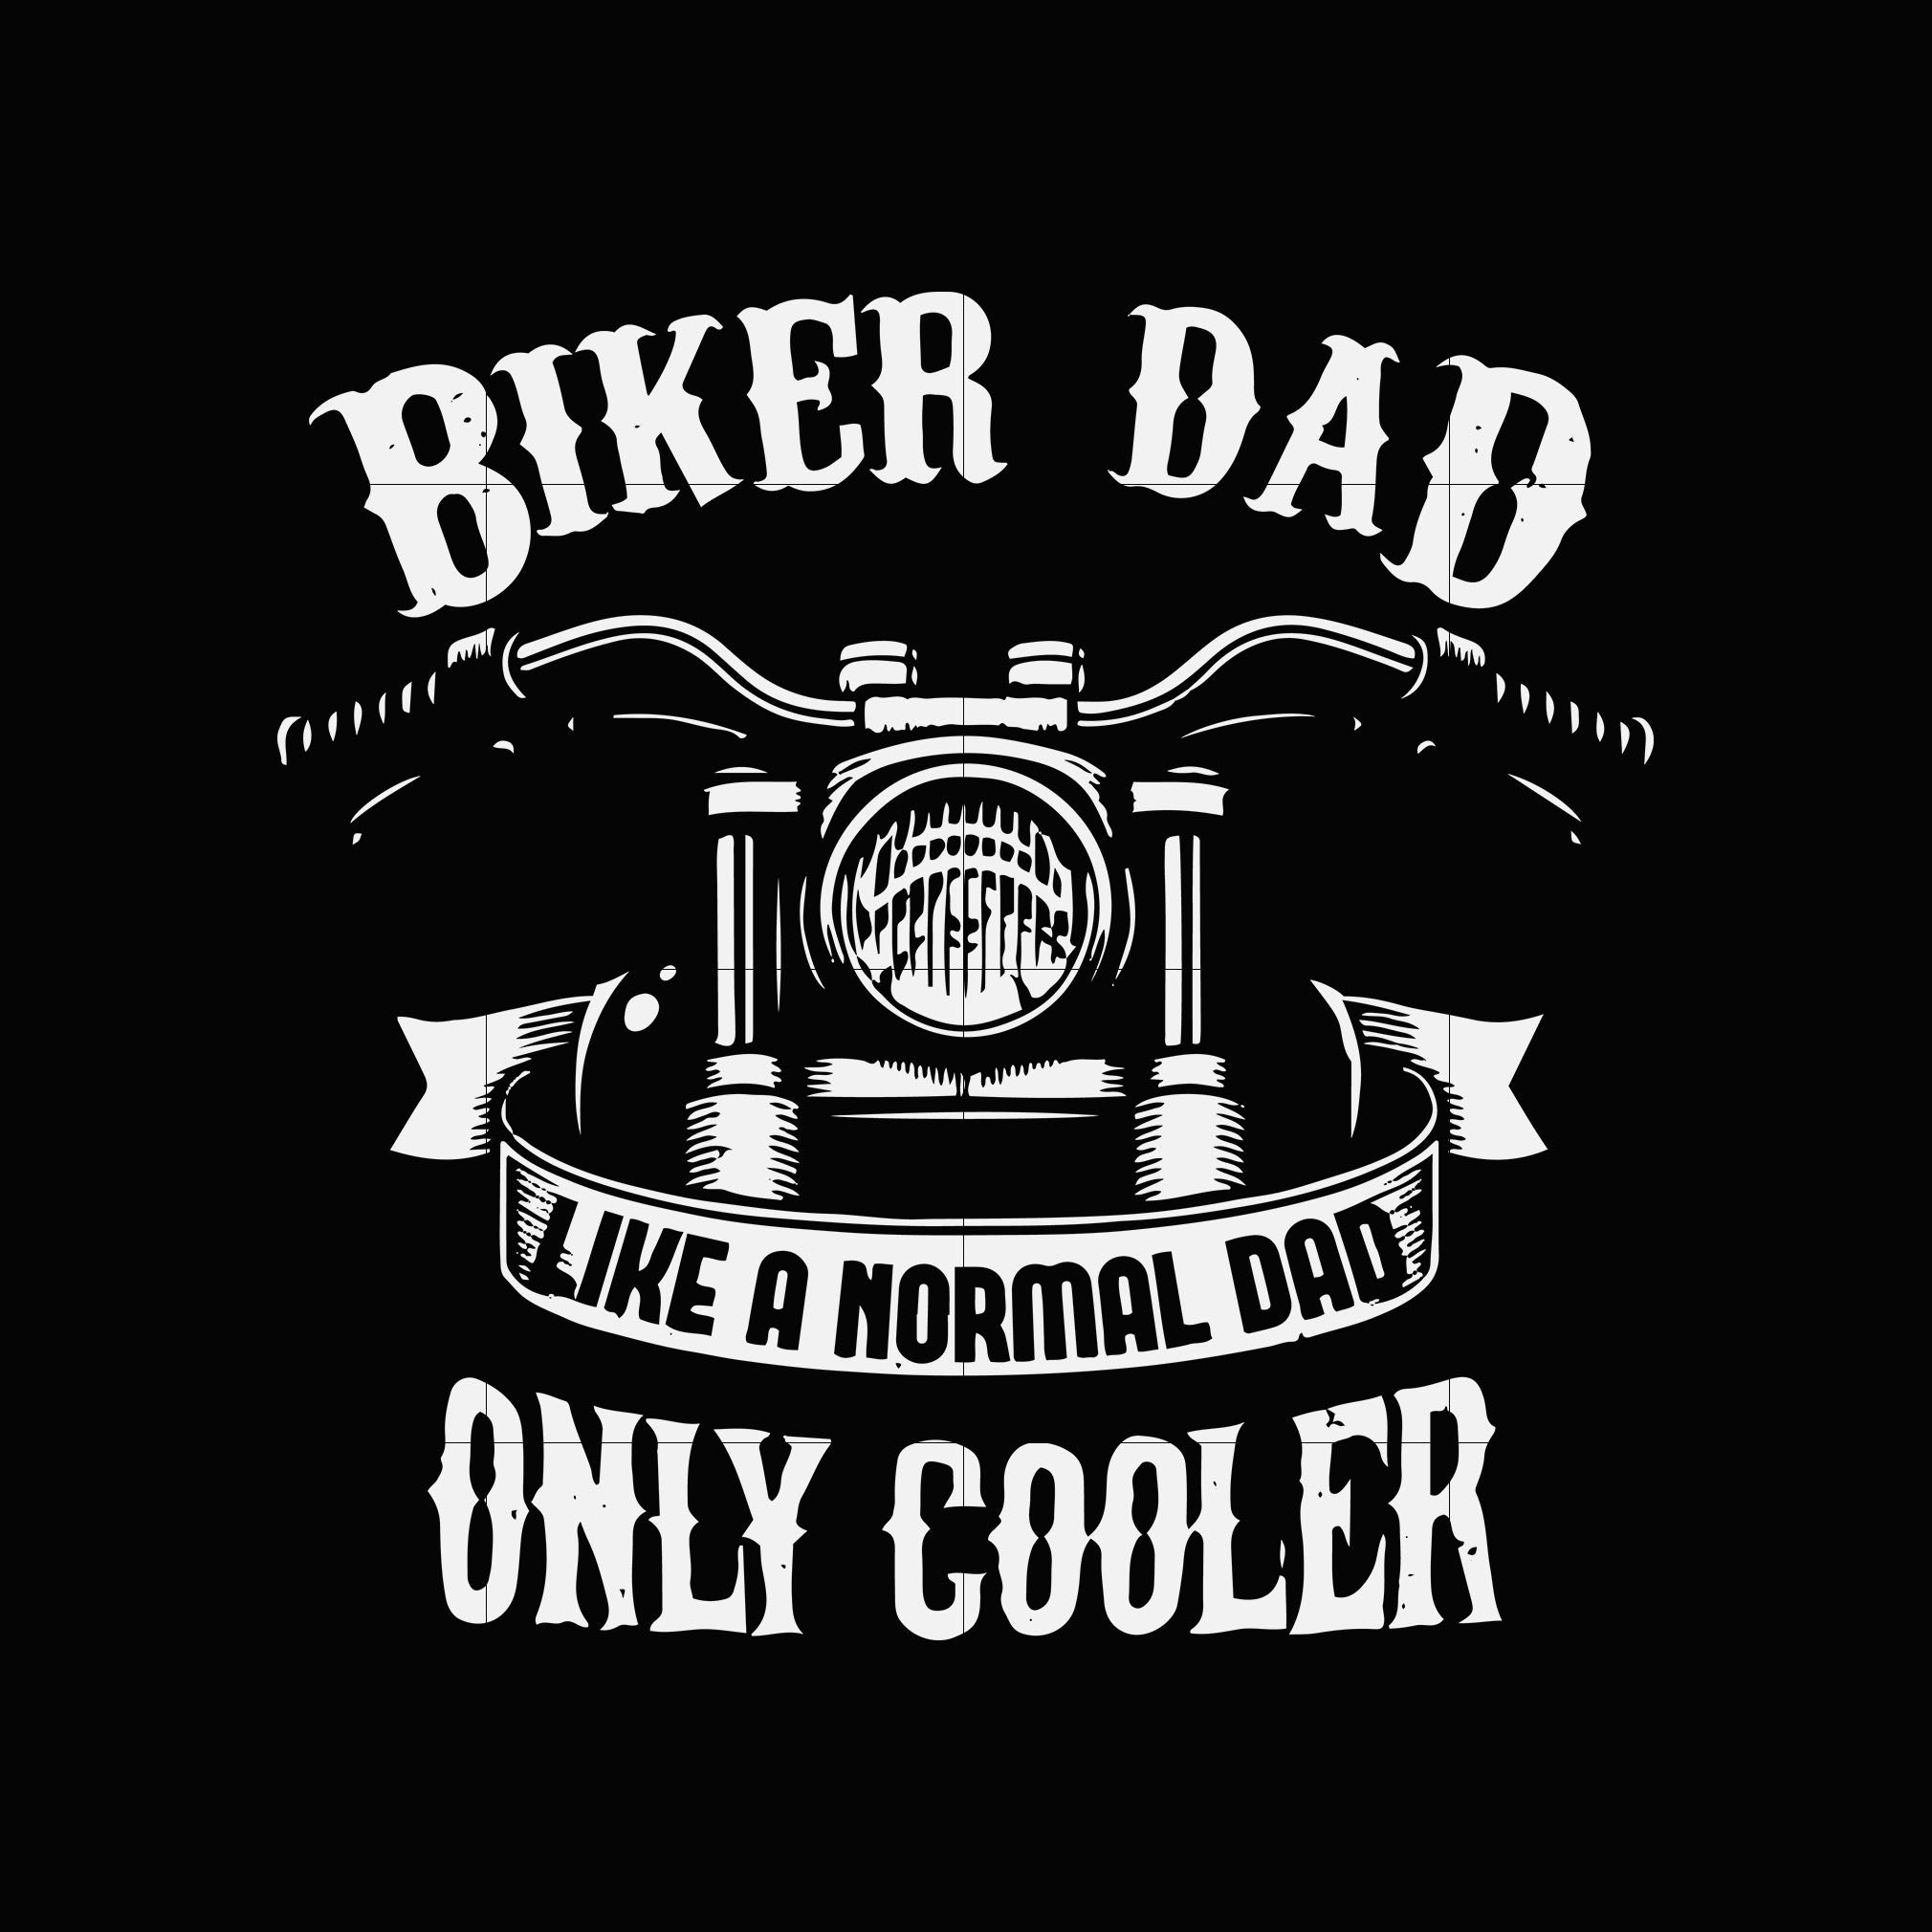 Biker dad like a normal dad only cooler svg ,dxf,eps,png digital file